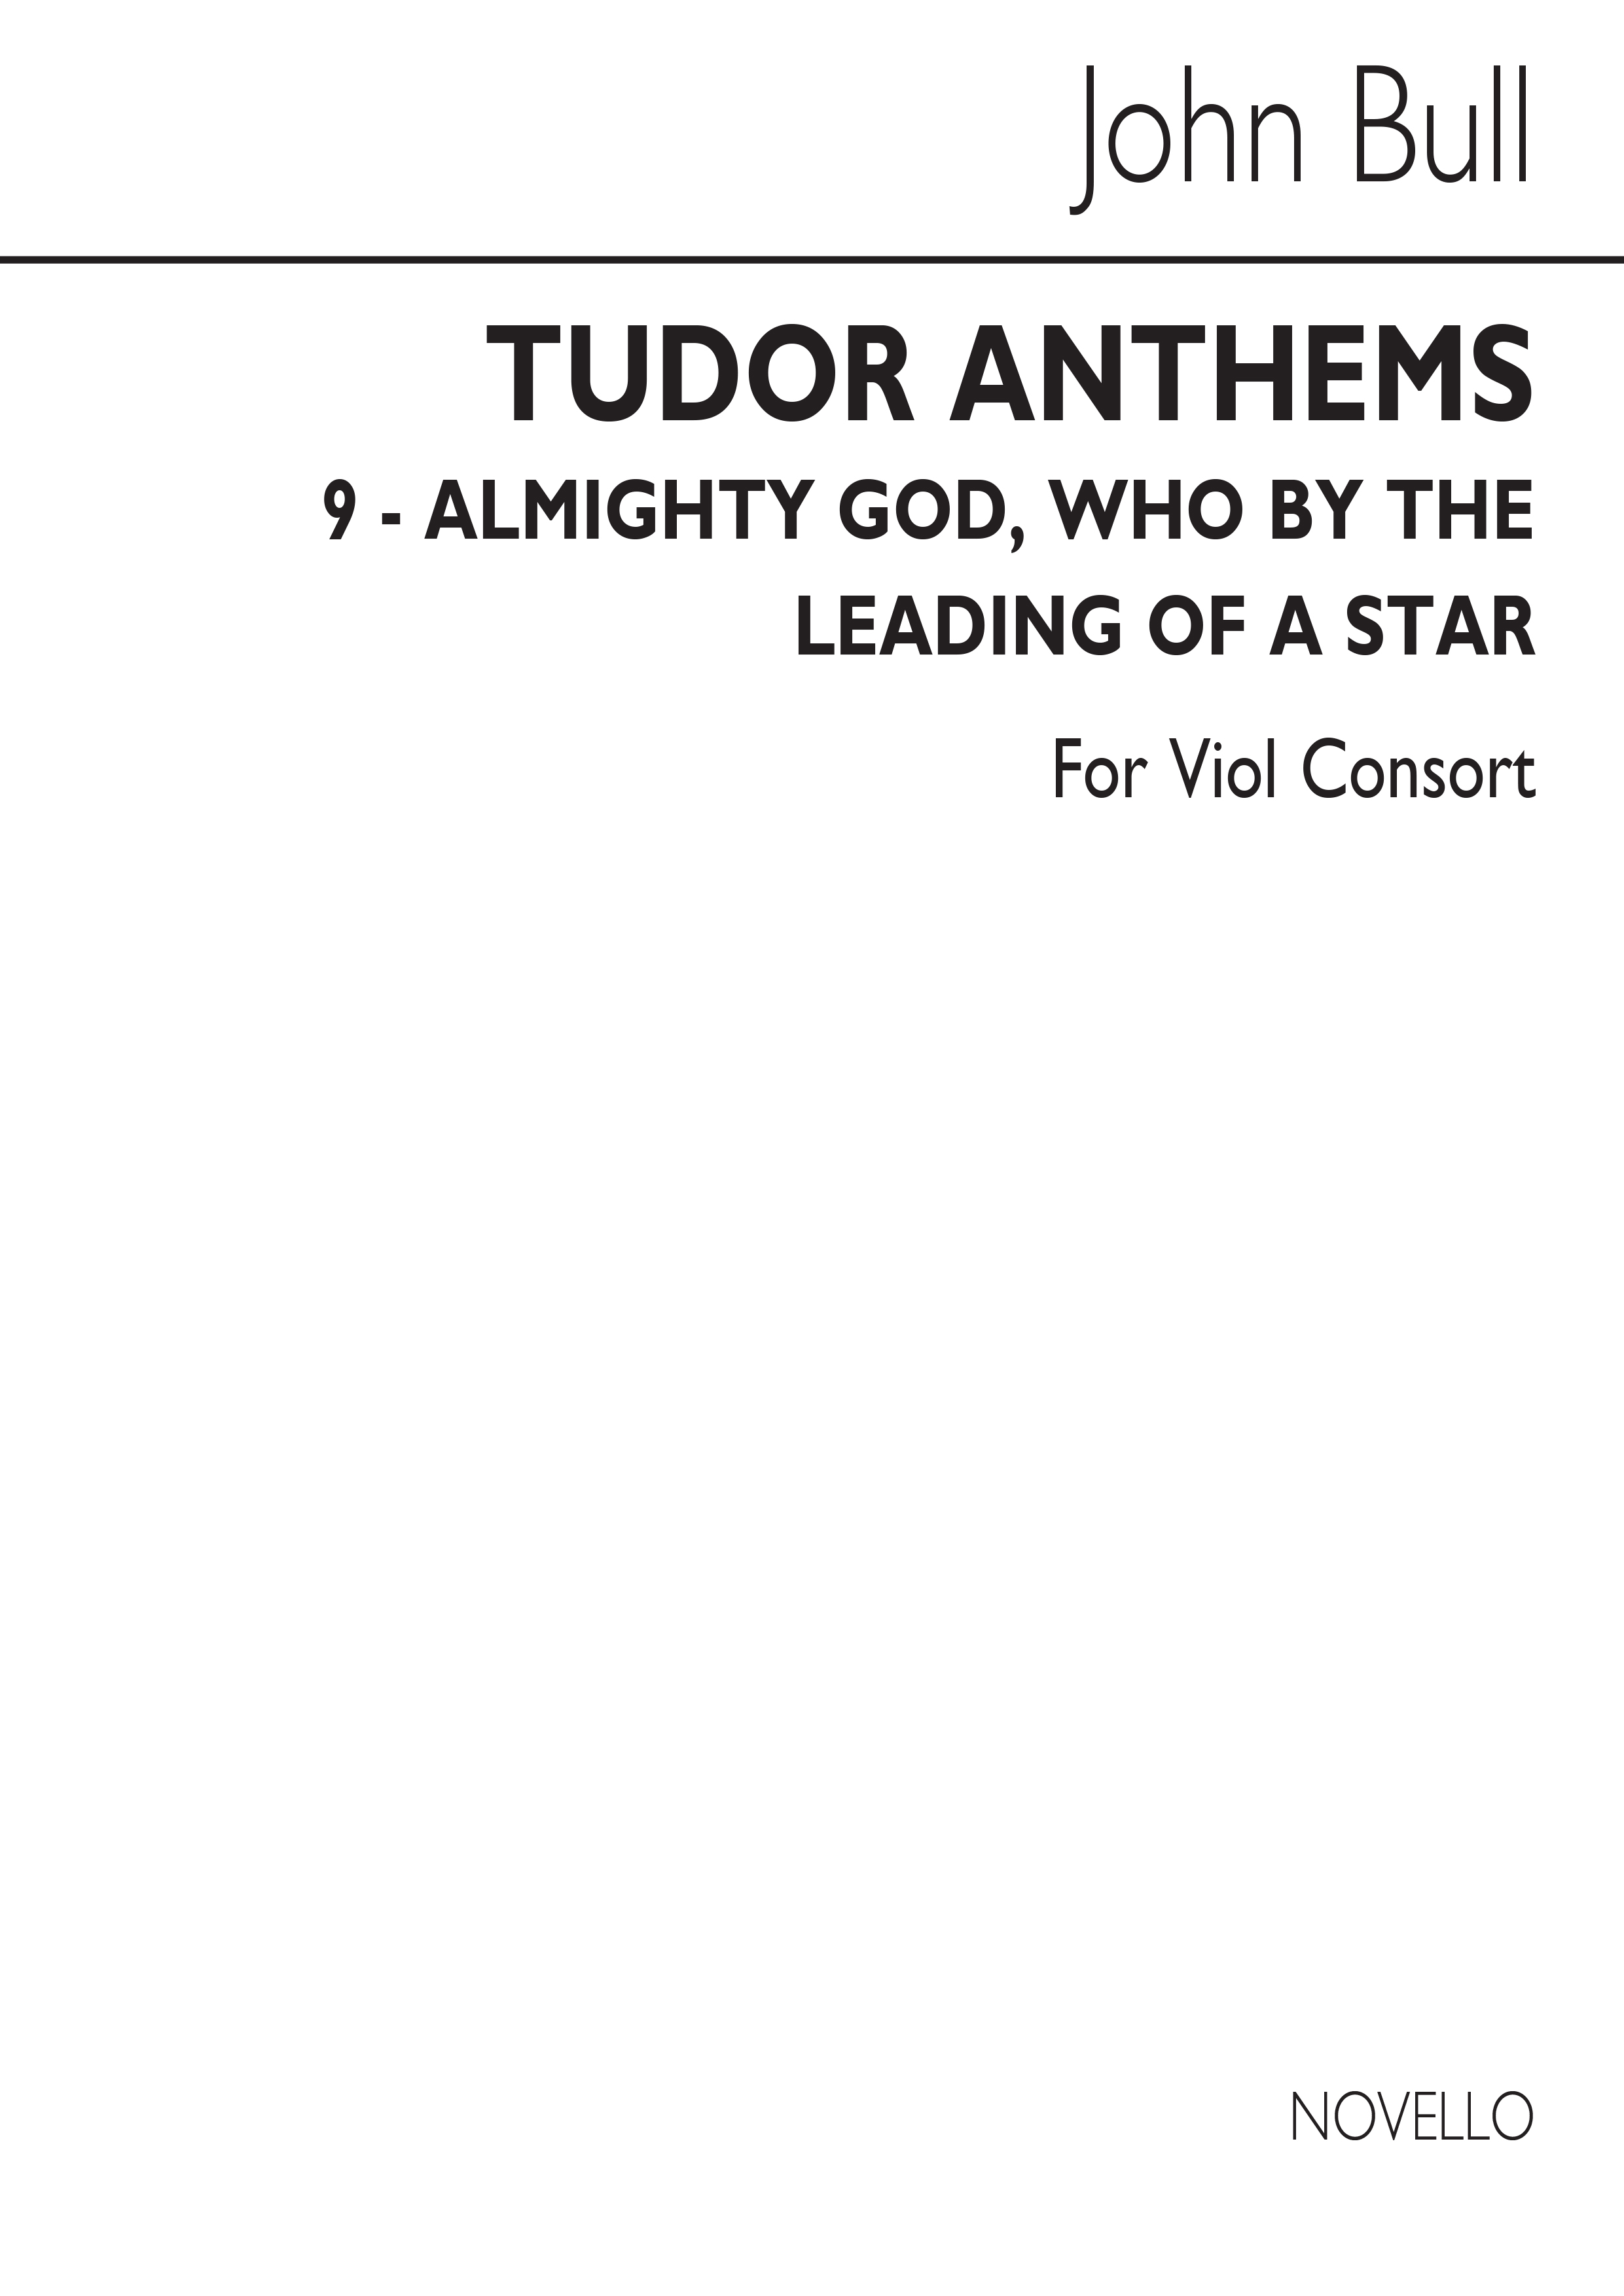 John Bull: Almighty God Who By The Leading Of A Star: Viol Consort: Score and